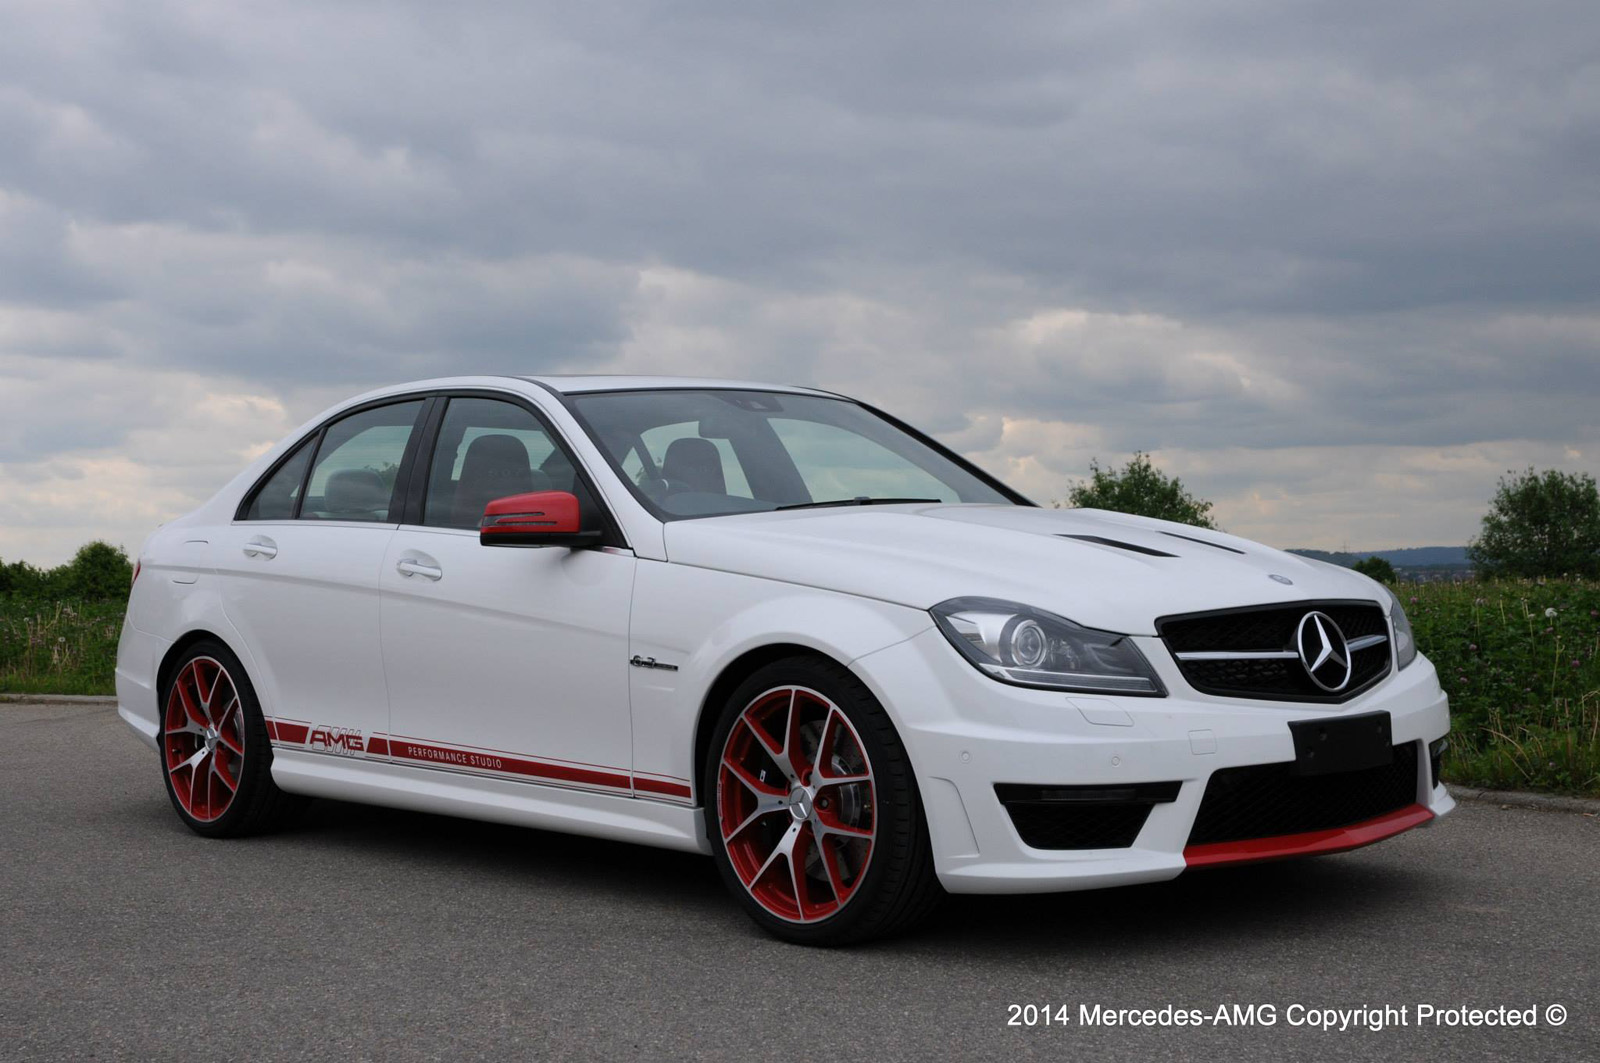 special mercedes benz c63 amg edition 507 unveiled for australia gtspirit. Black Bedroom Furniture Sets. Home Design Ideas